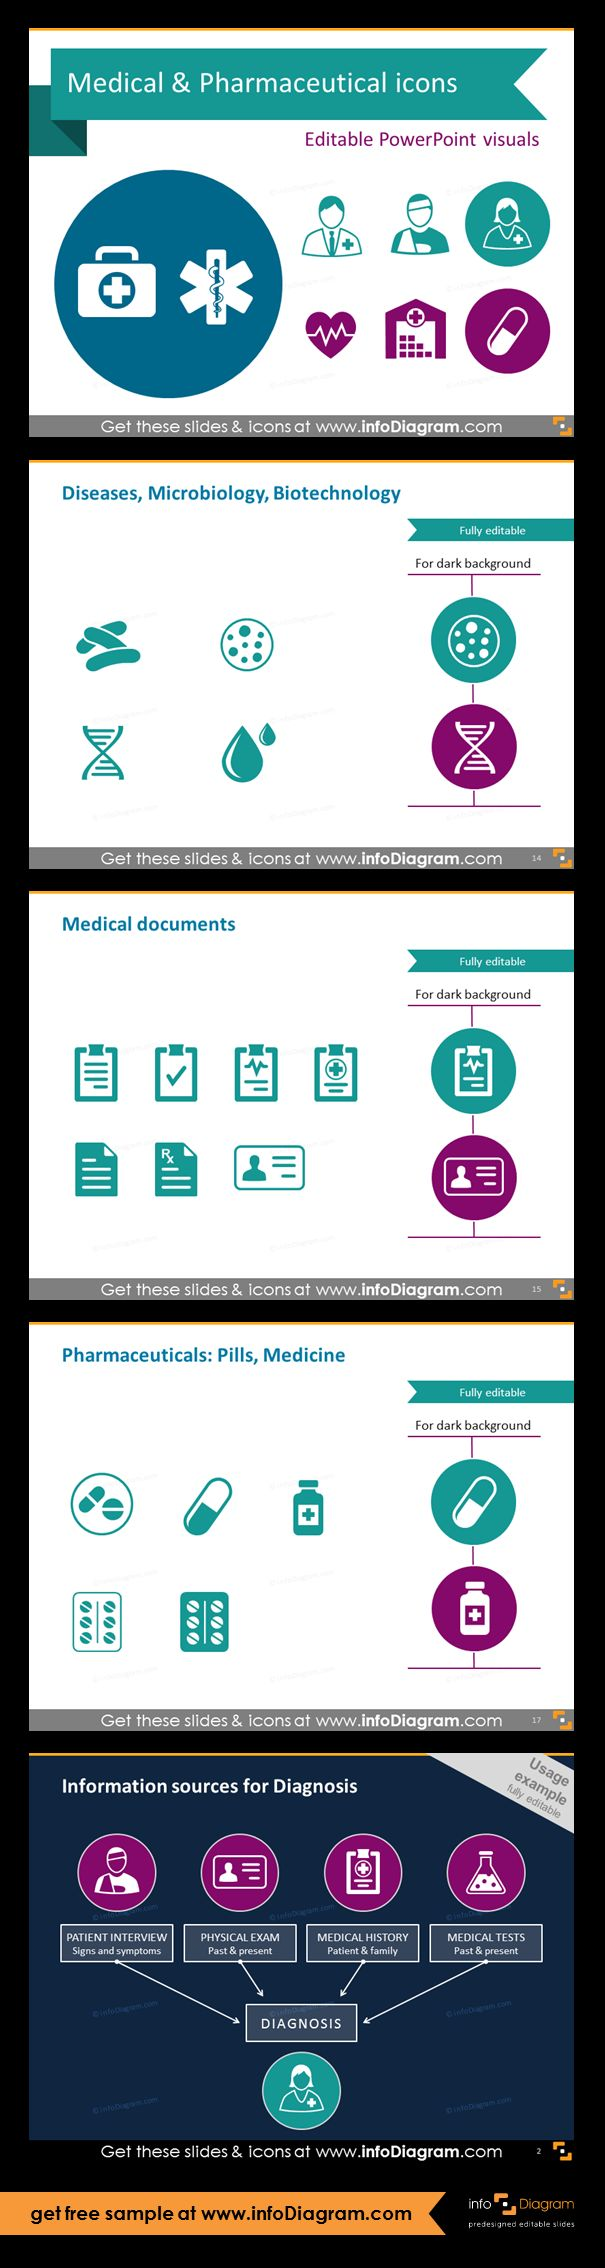 Health care icons: disease, microbiology, biotechnology, medical document, pills and medicine. Usage example on information sources for diagnosis.